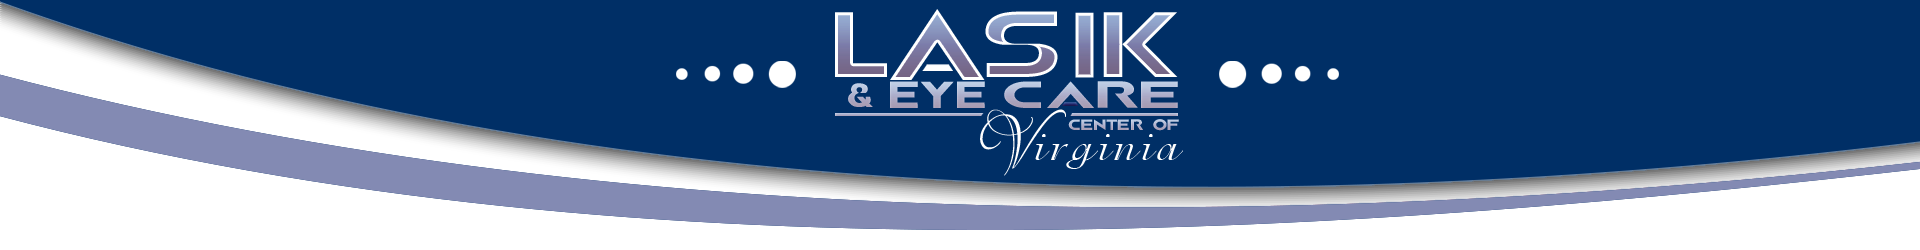 LASIK Center of Virginia